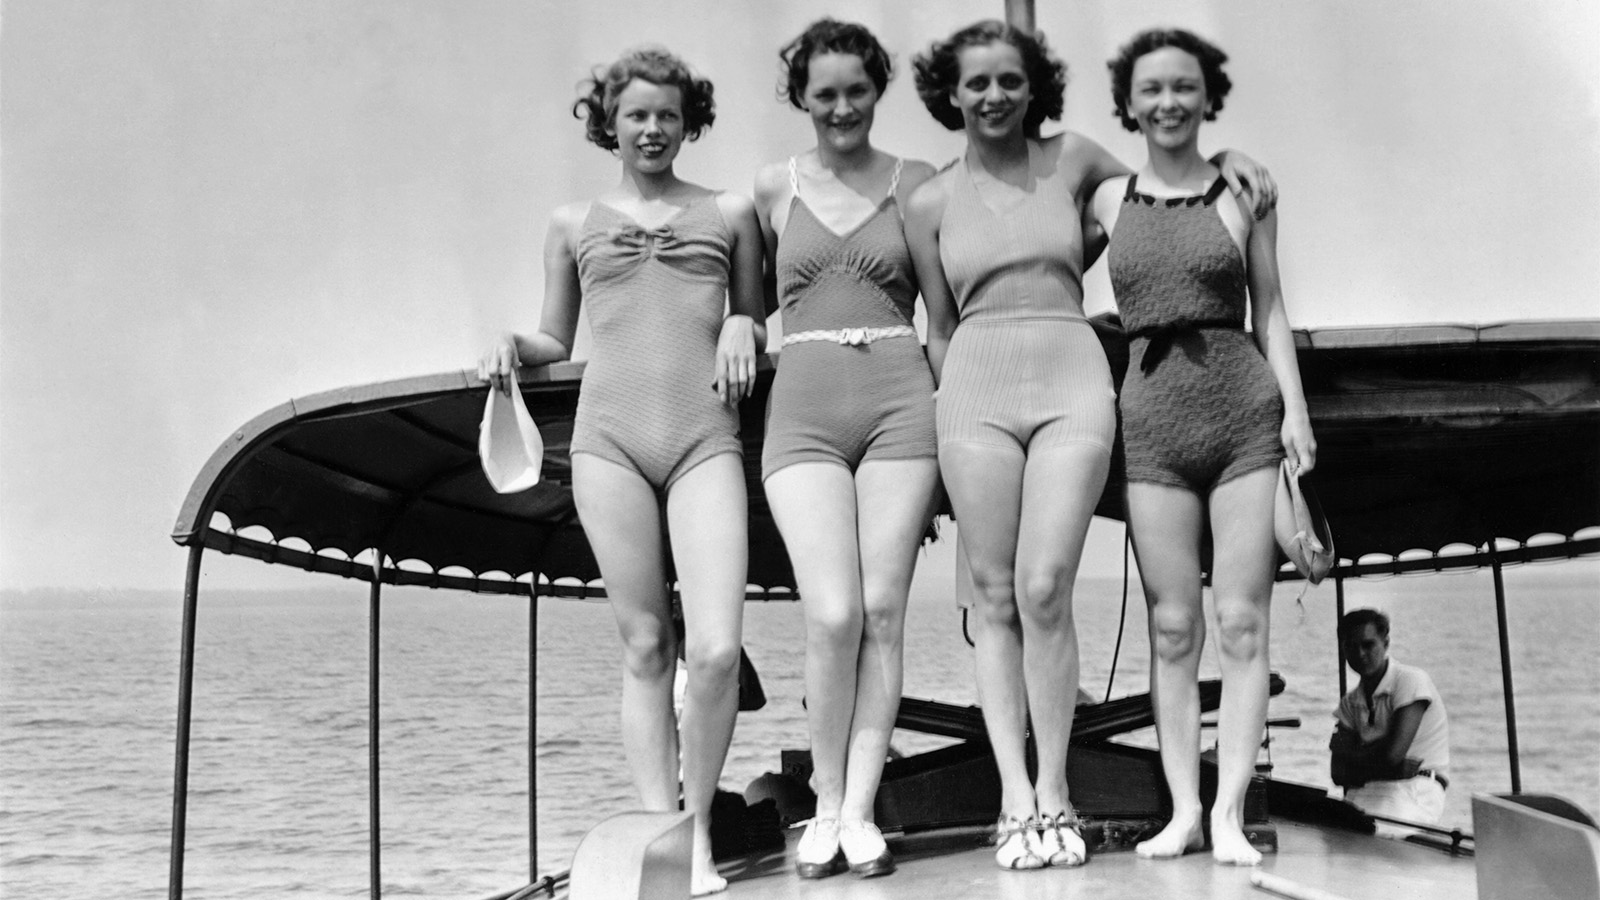 Great-great-Grandma's Swimsuit Was a Hot Mess